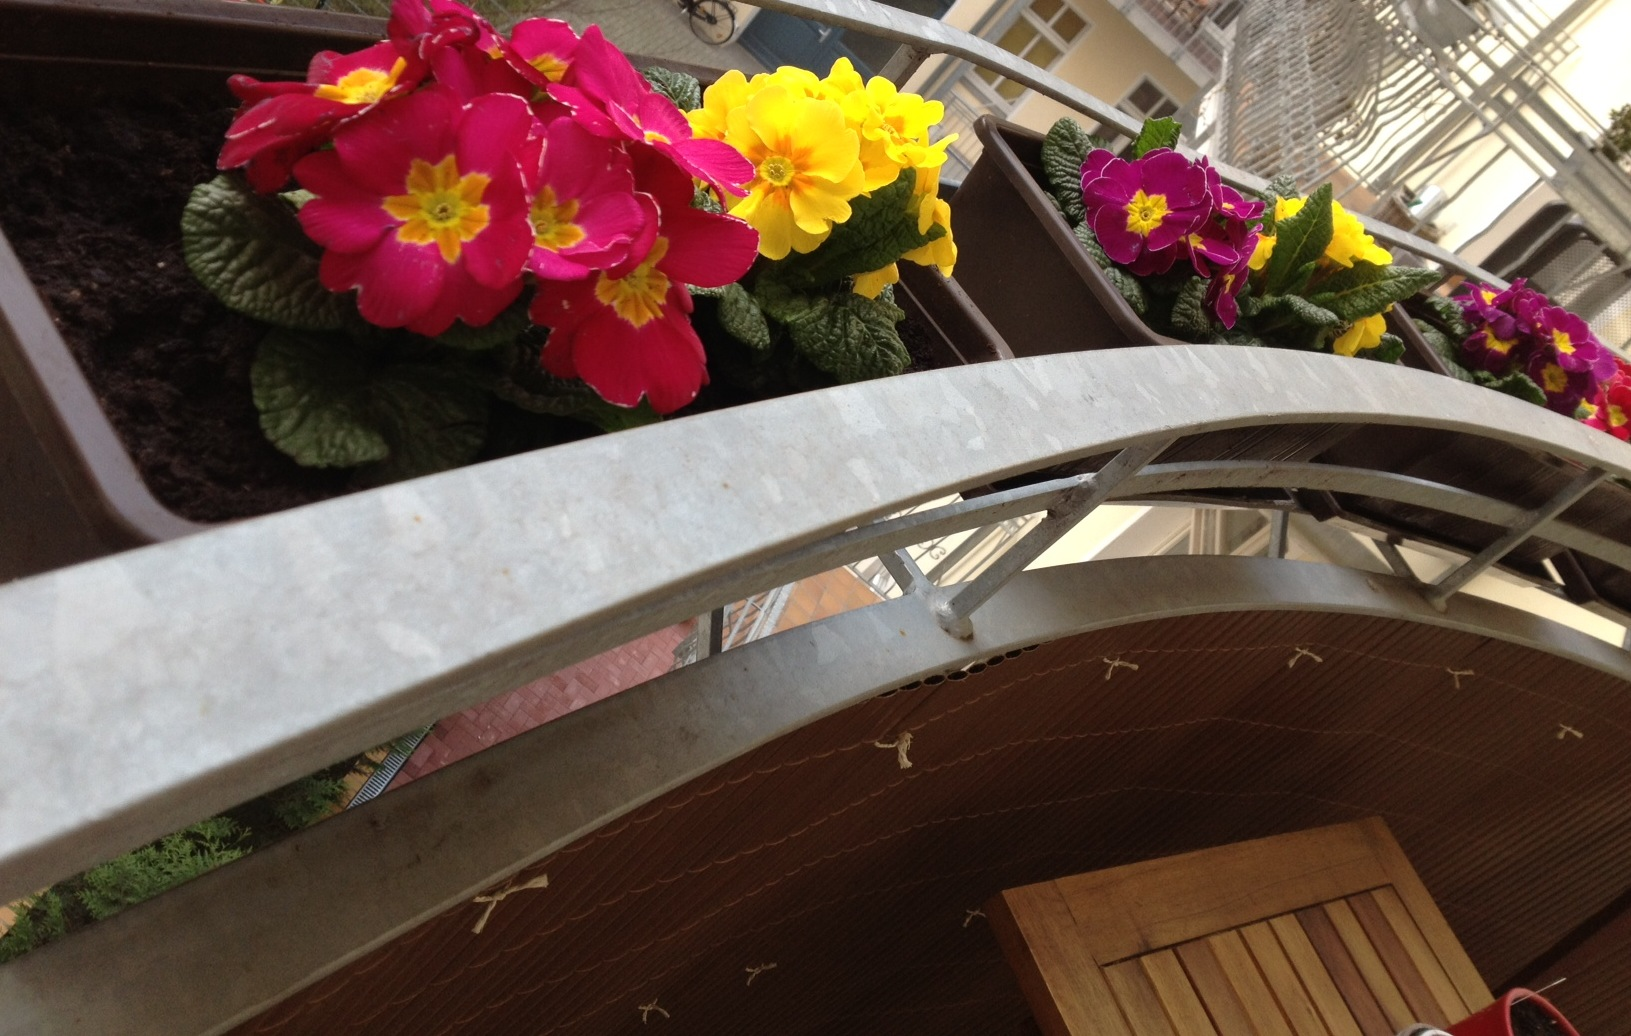 Balcony Flowers for Spring - - Savannah Page